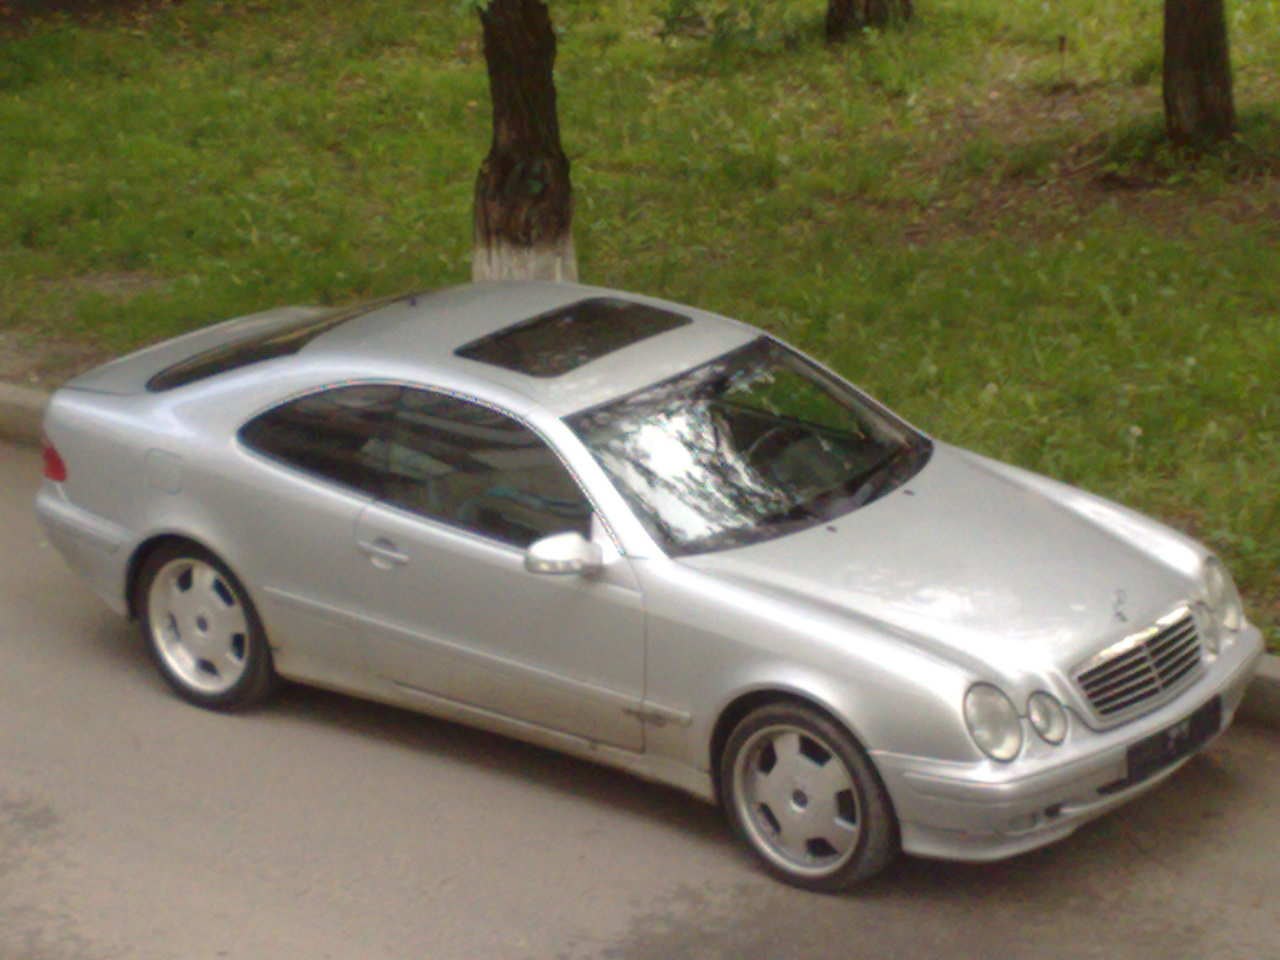 2000 mercedes benz clk class for sale 3200cc gasoline for Mercedes benz clk500 for sale